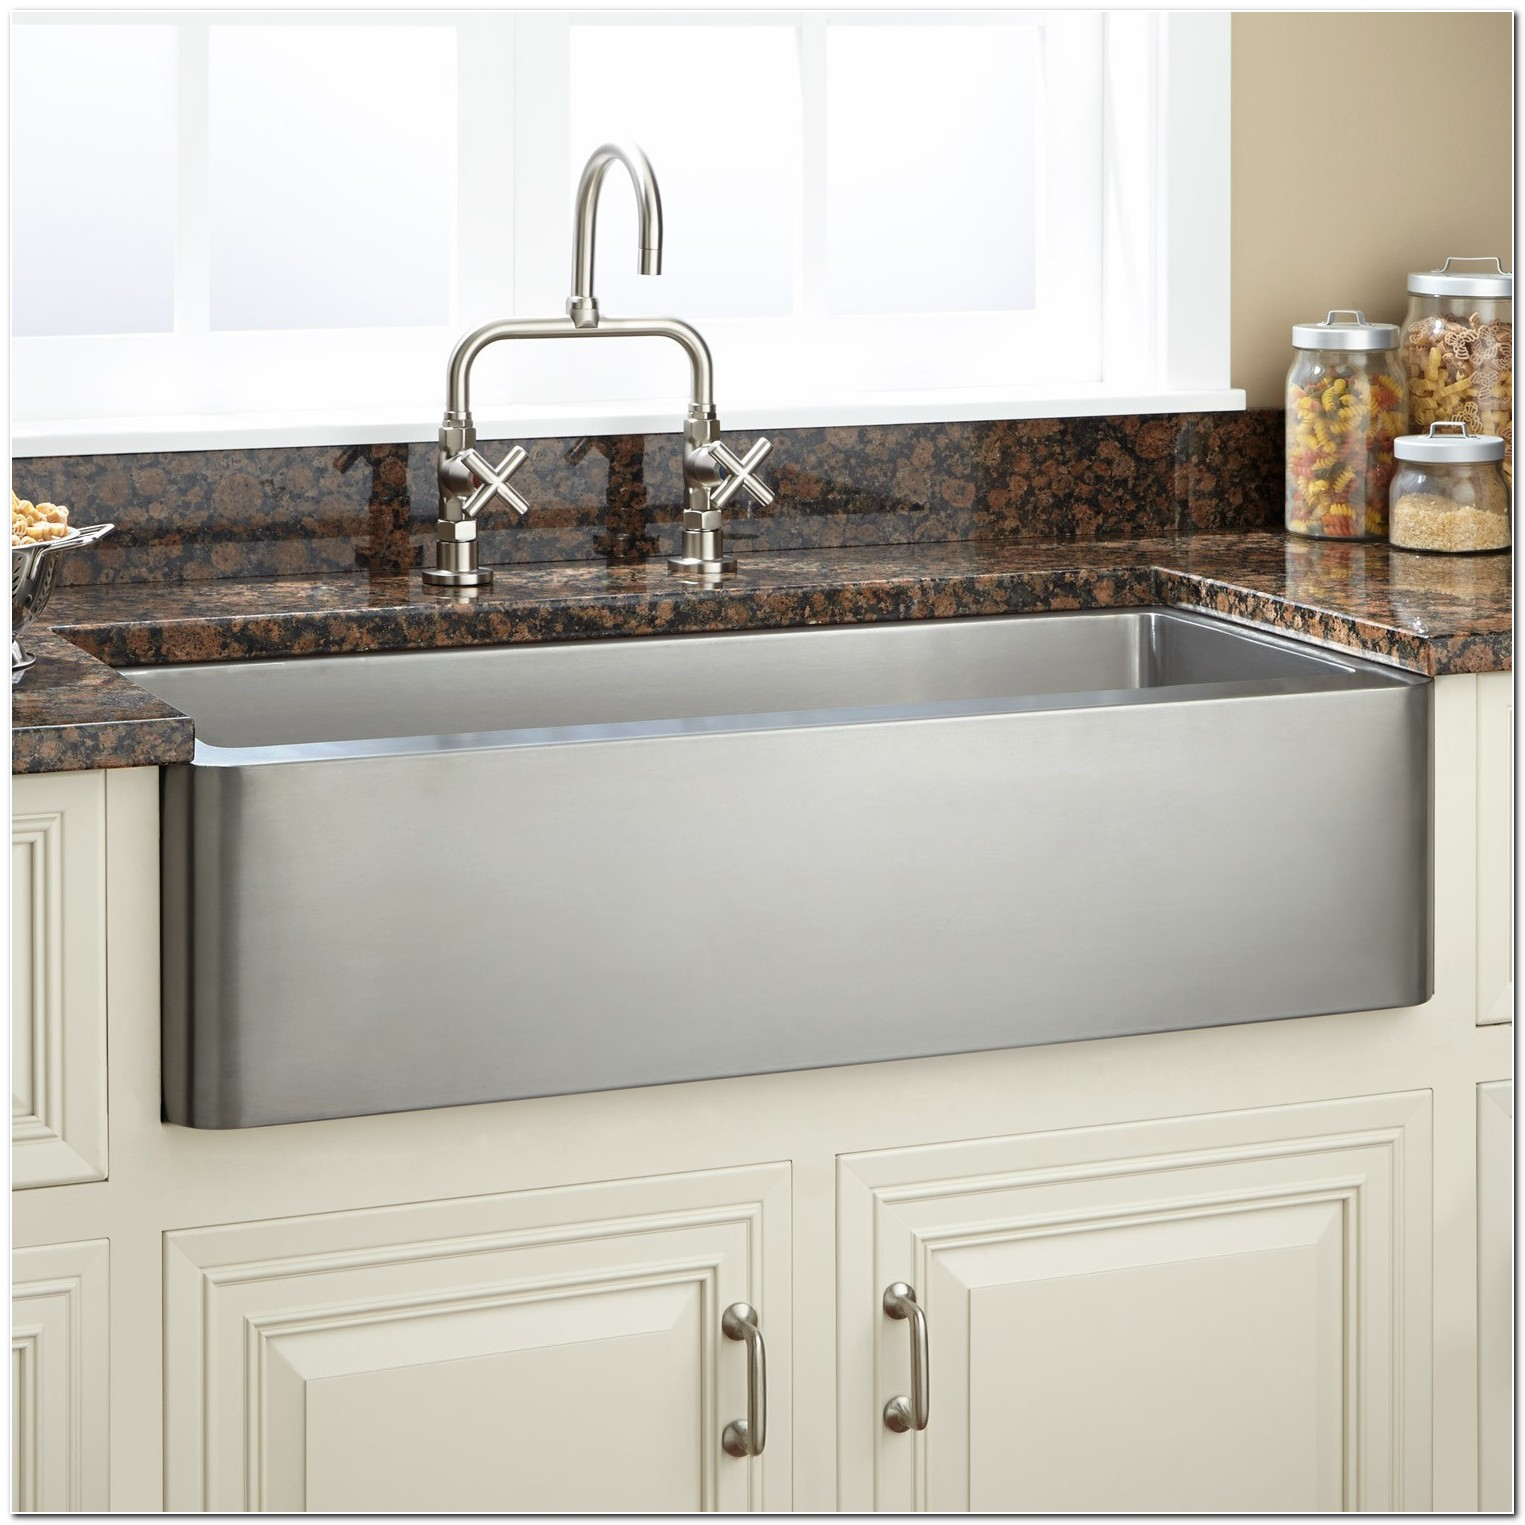 33 Apron Front Sink Stainless Steel